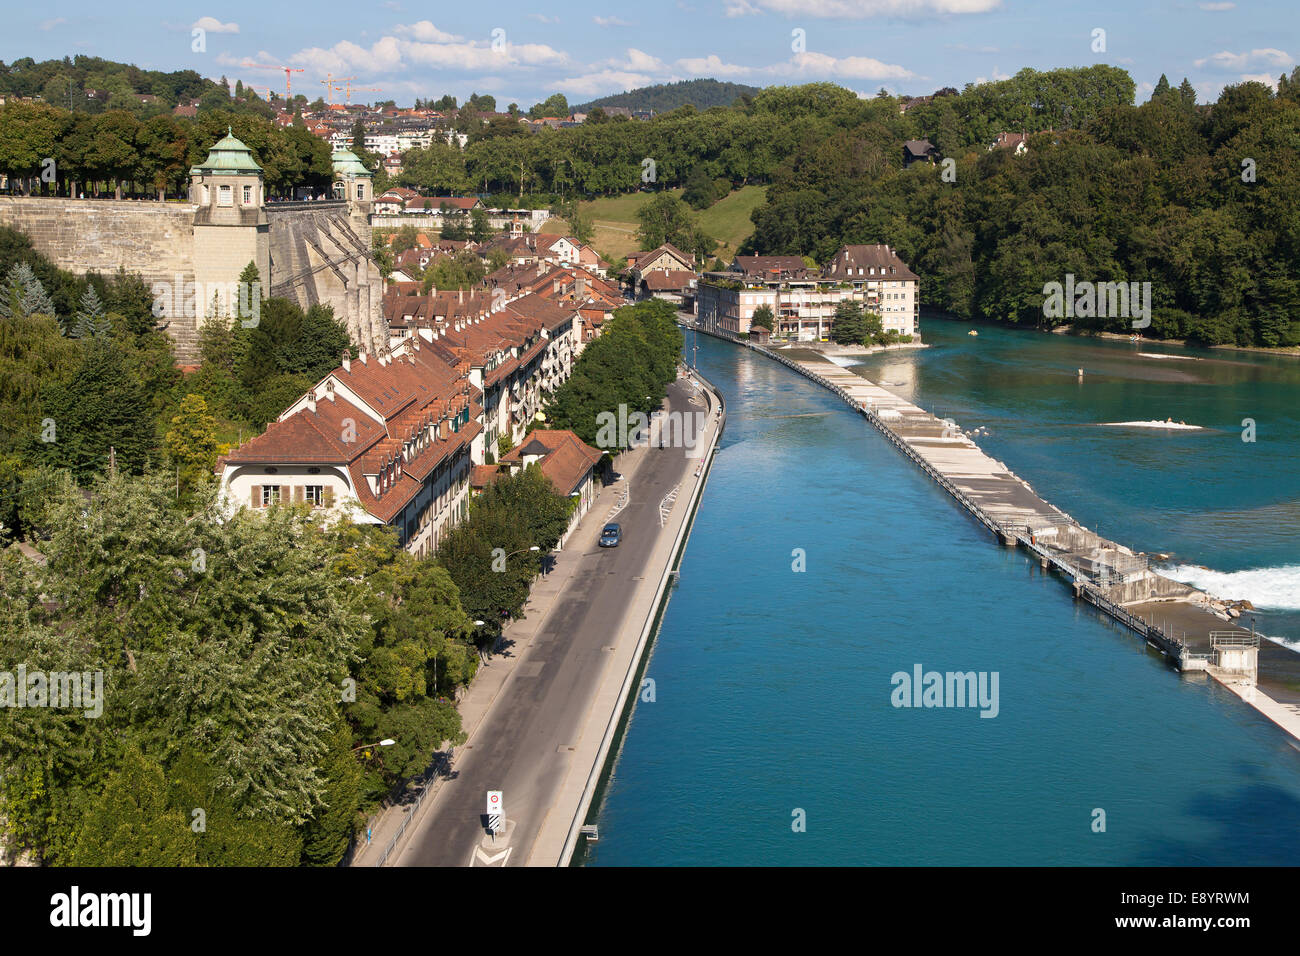 Matte quartier, historic district of Bern at the shores of river Aare. - Stock Image